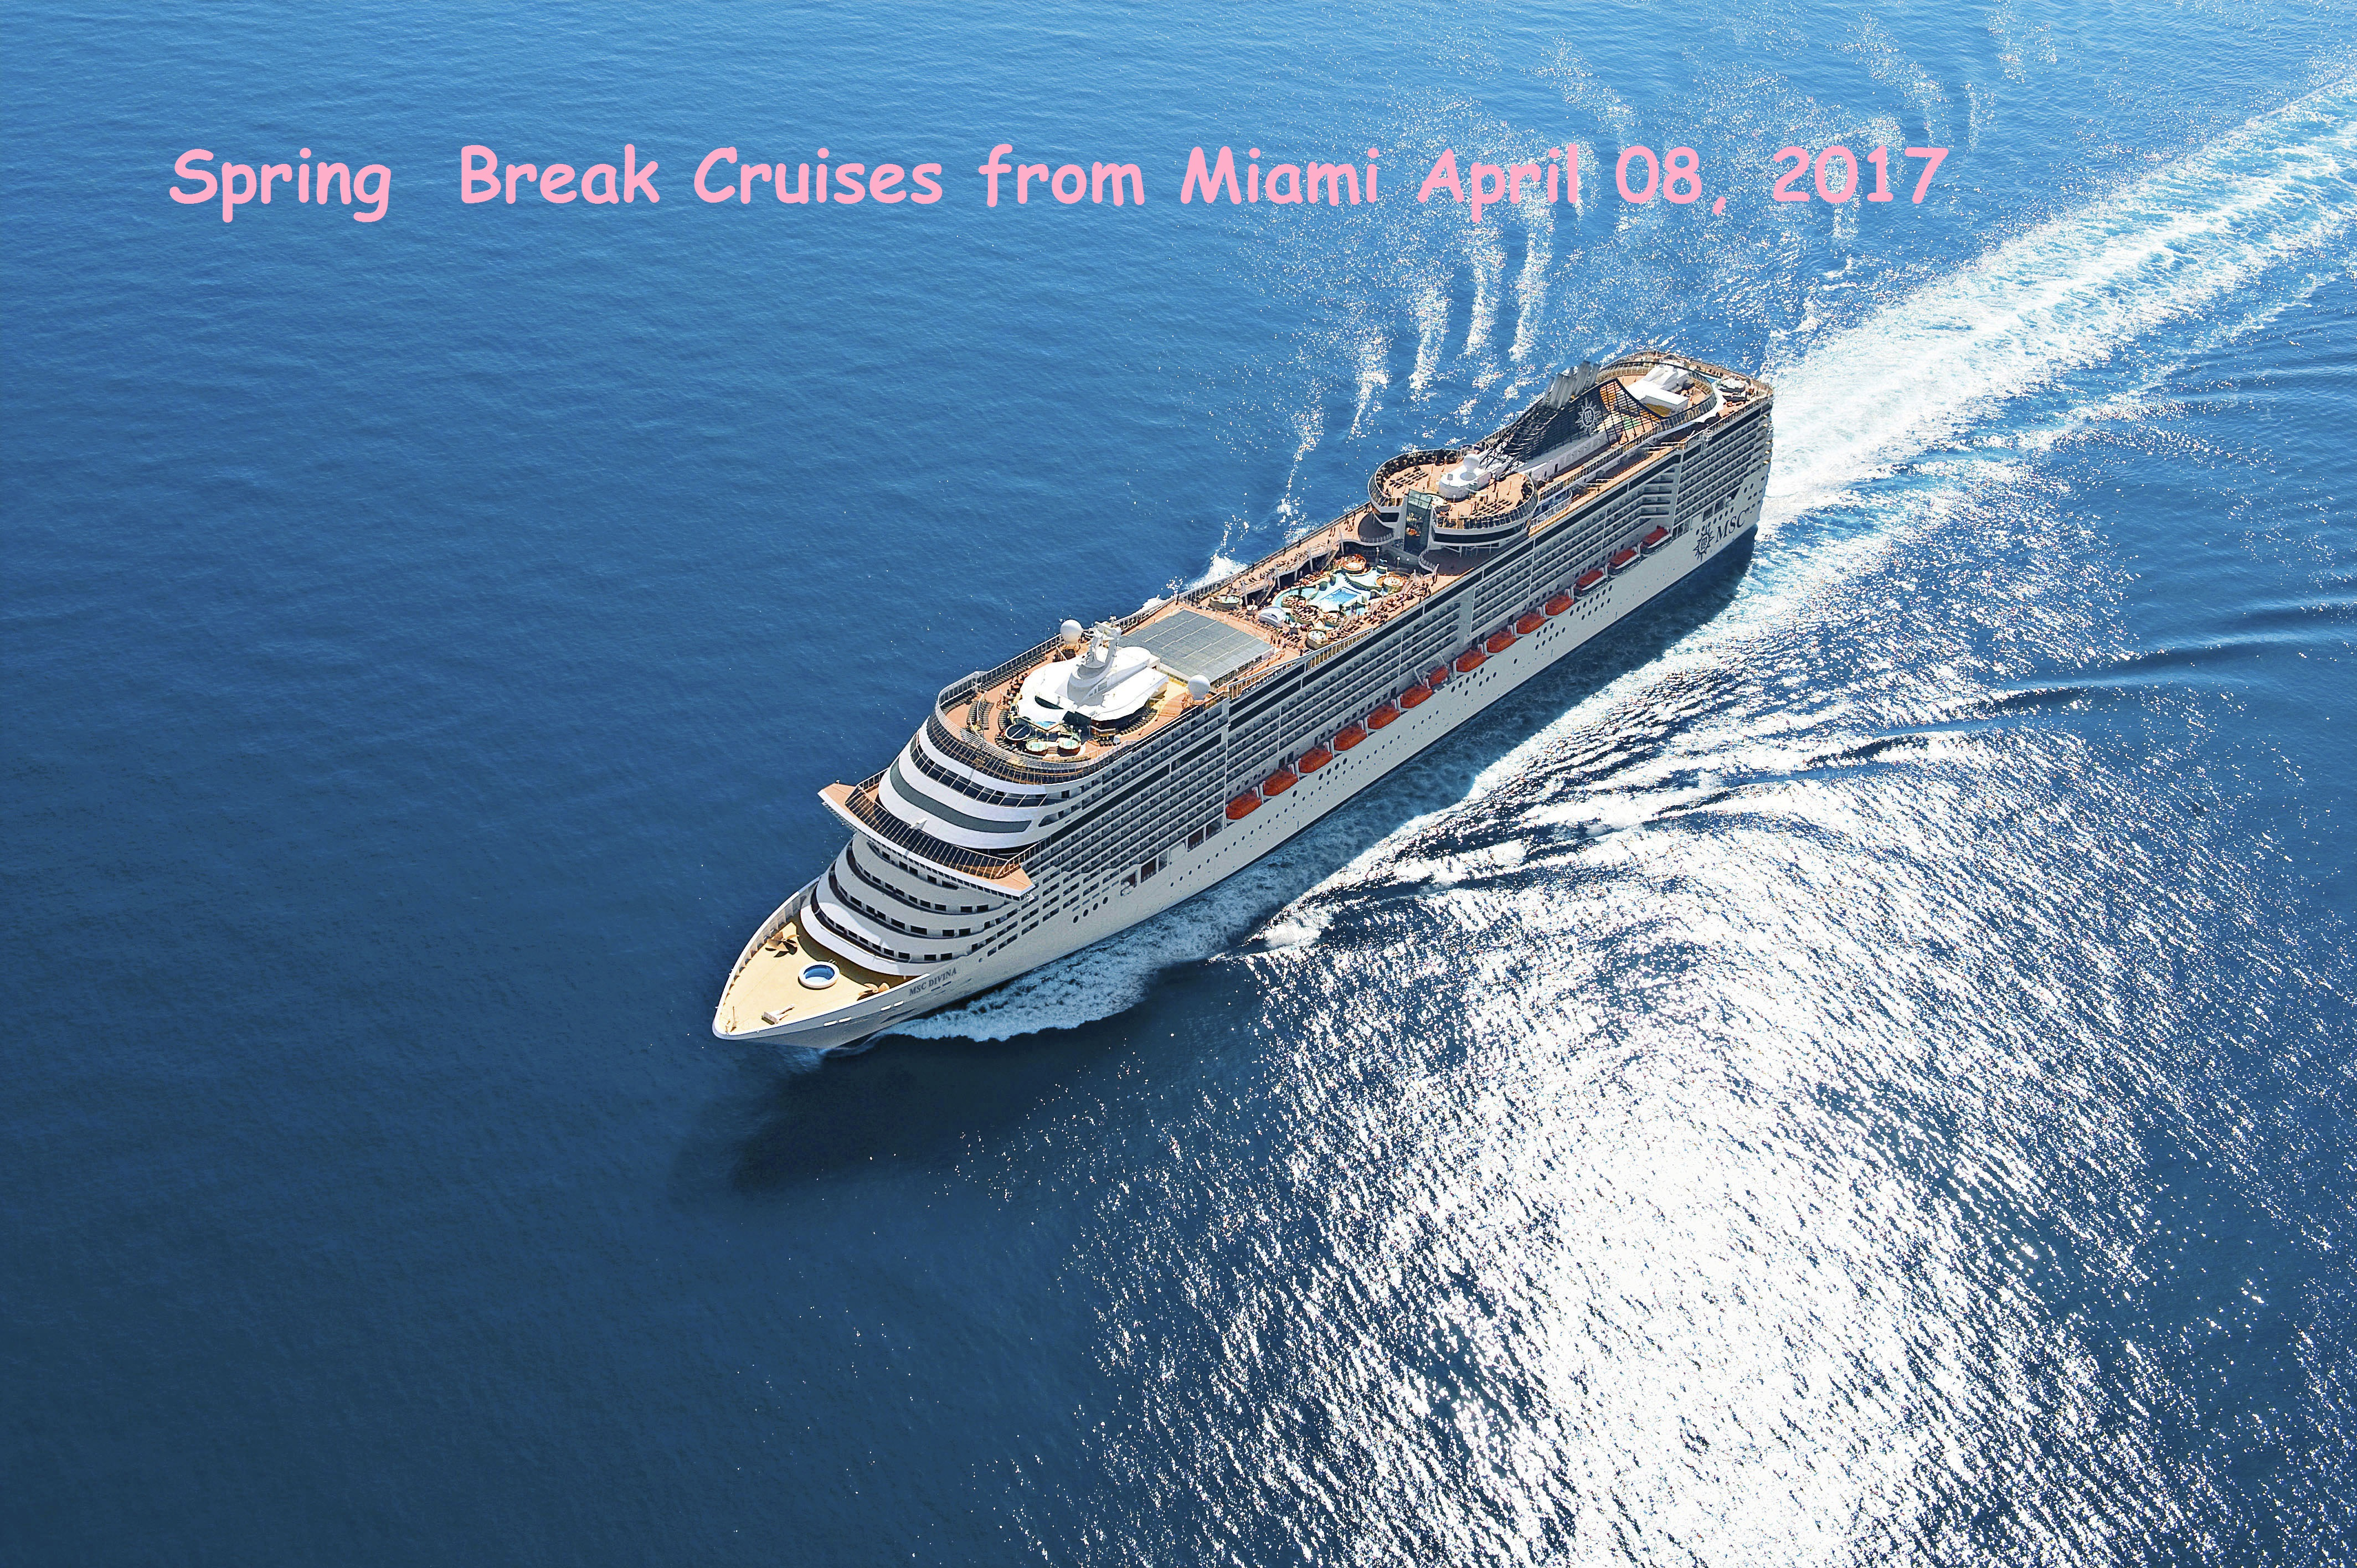 MSC Divina Spring Break Caribbean Cruise April 15 2017